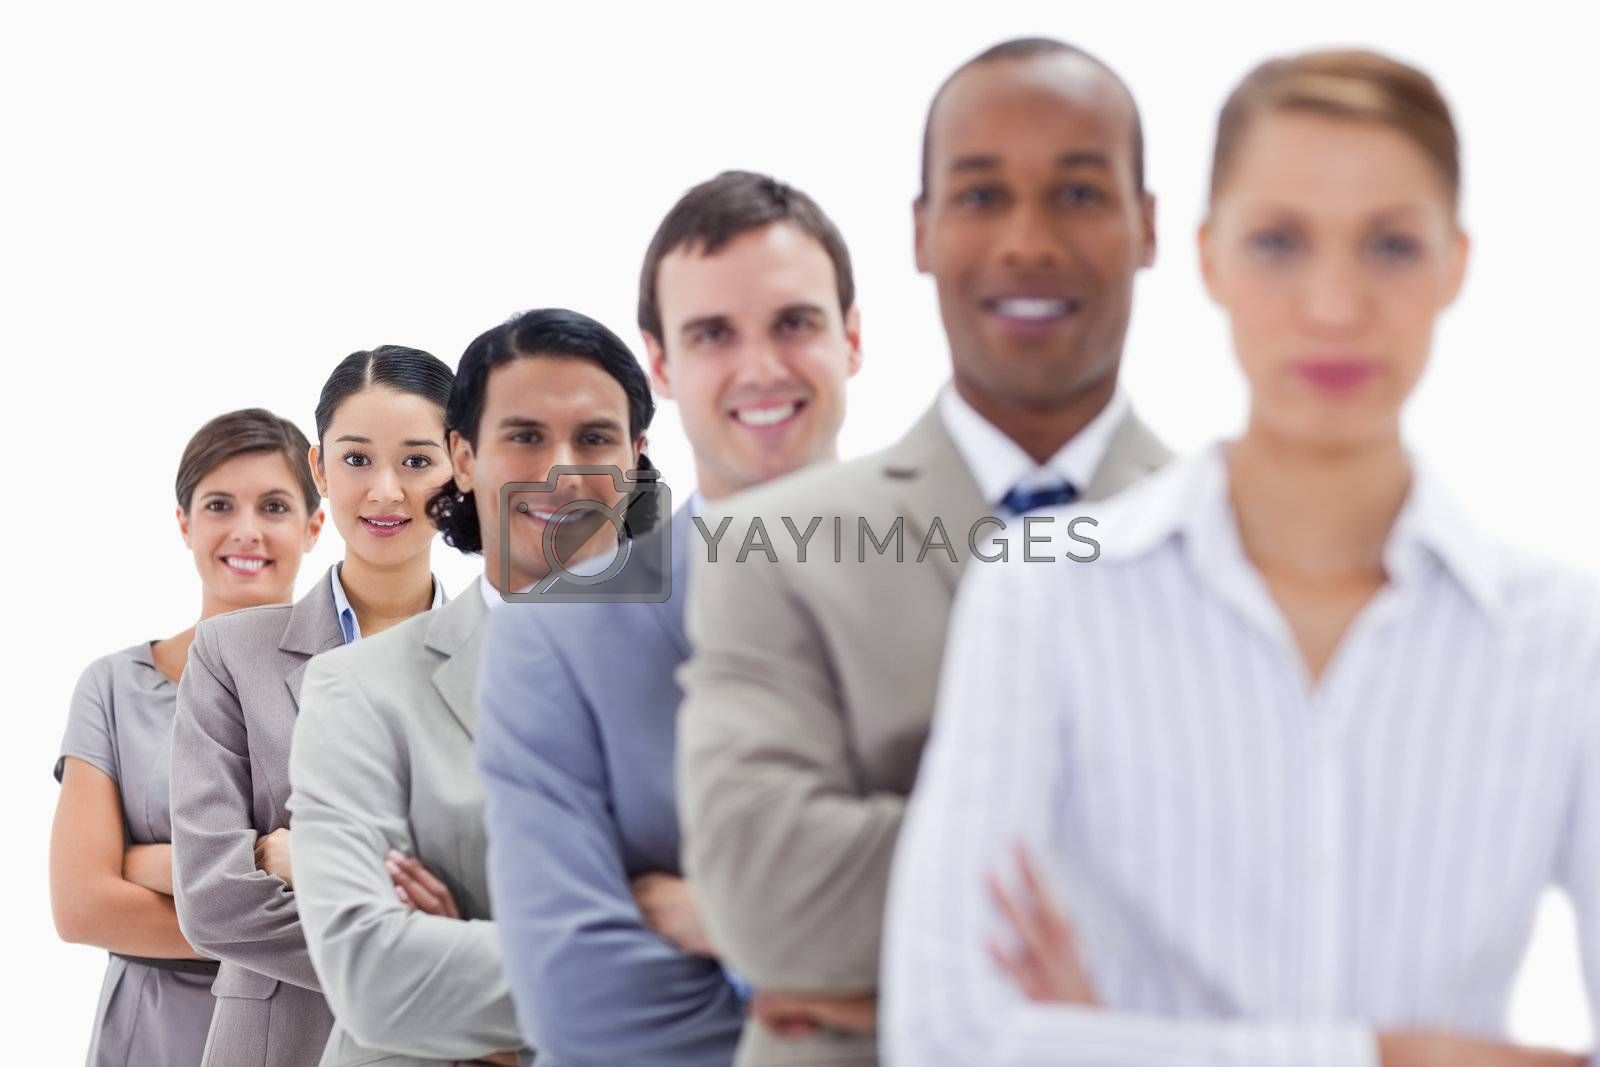 Close-up of happy workmates dressed in suits crossing their arms in a single line with focus on the last two people